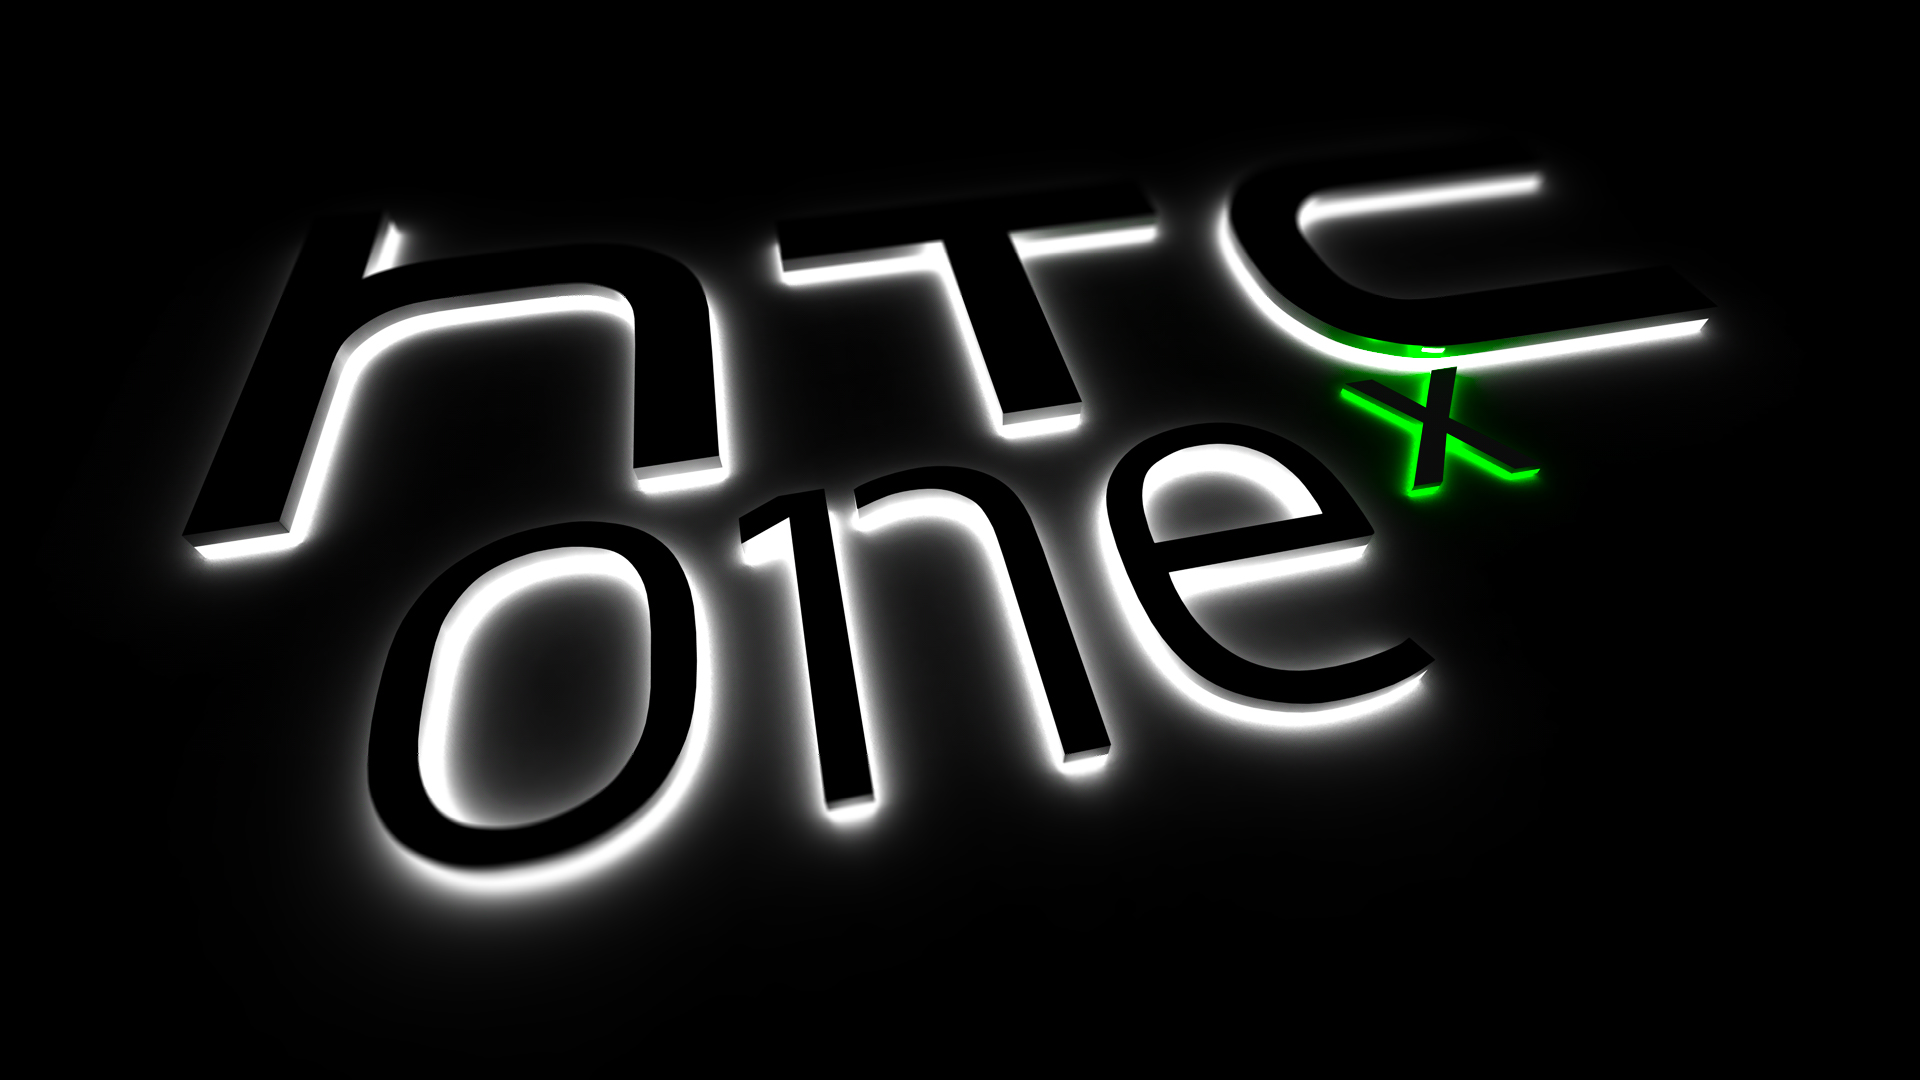 HTC one x Wallpaper by disast3r-1612